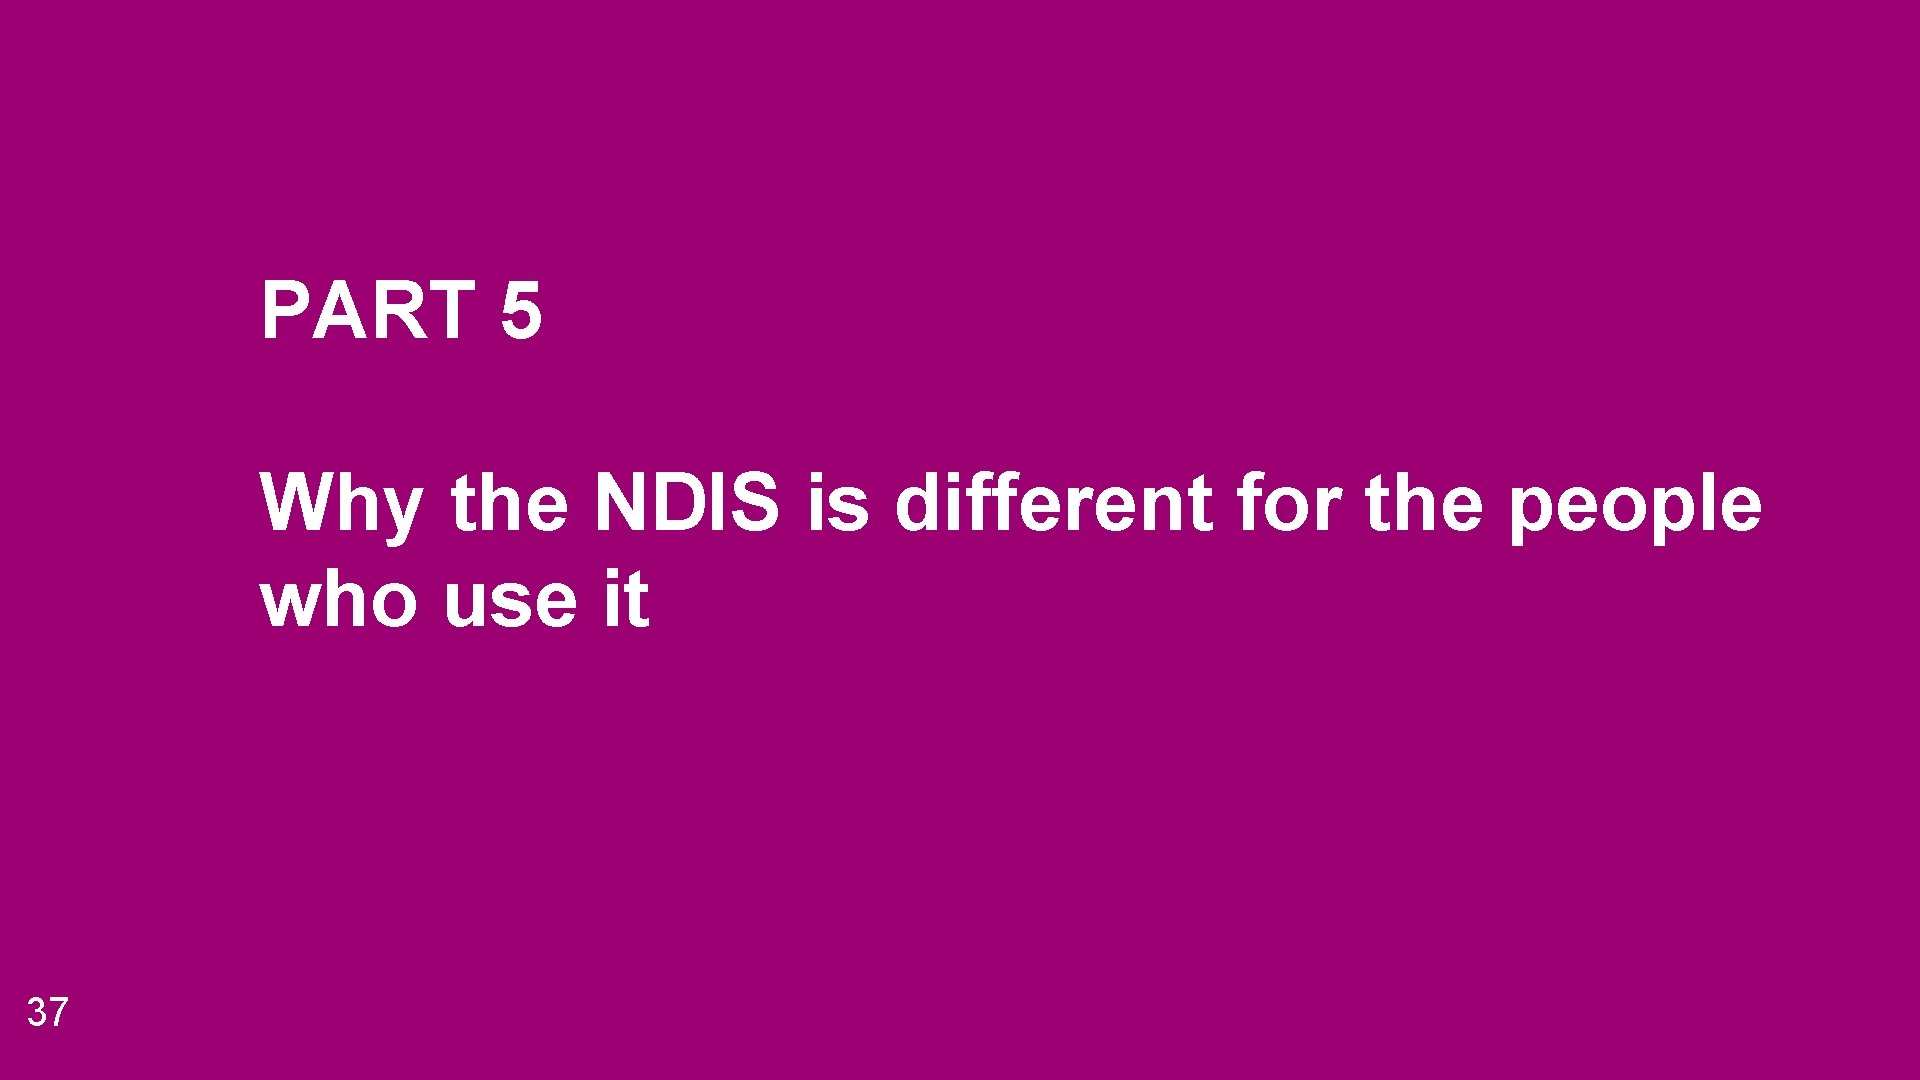 PART 5 Why the NDIS is different for the people who use it 37